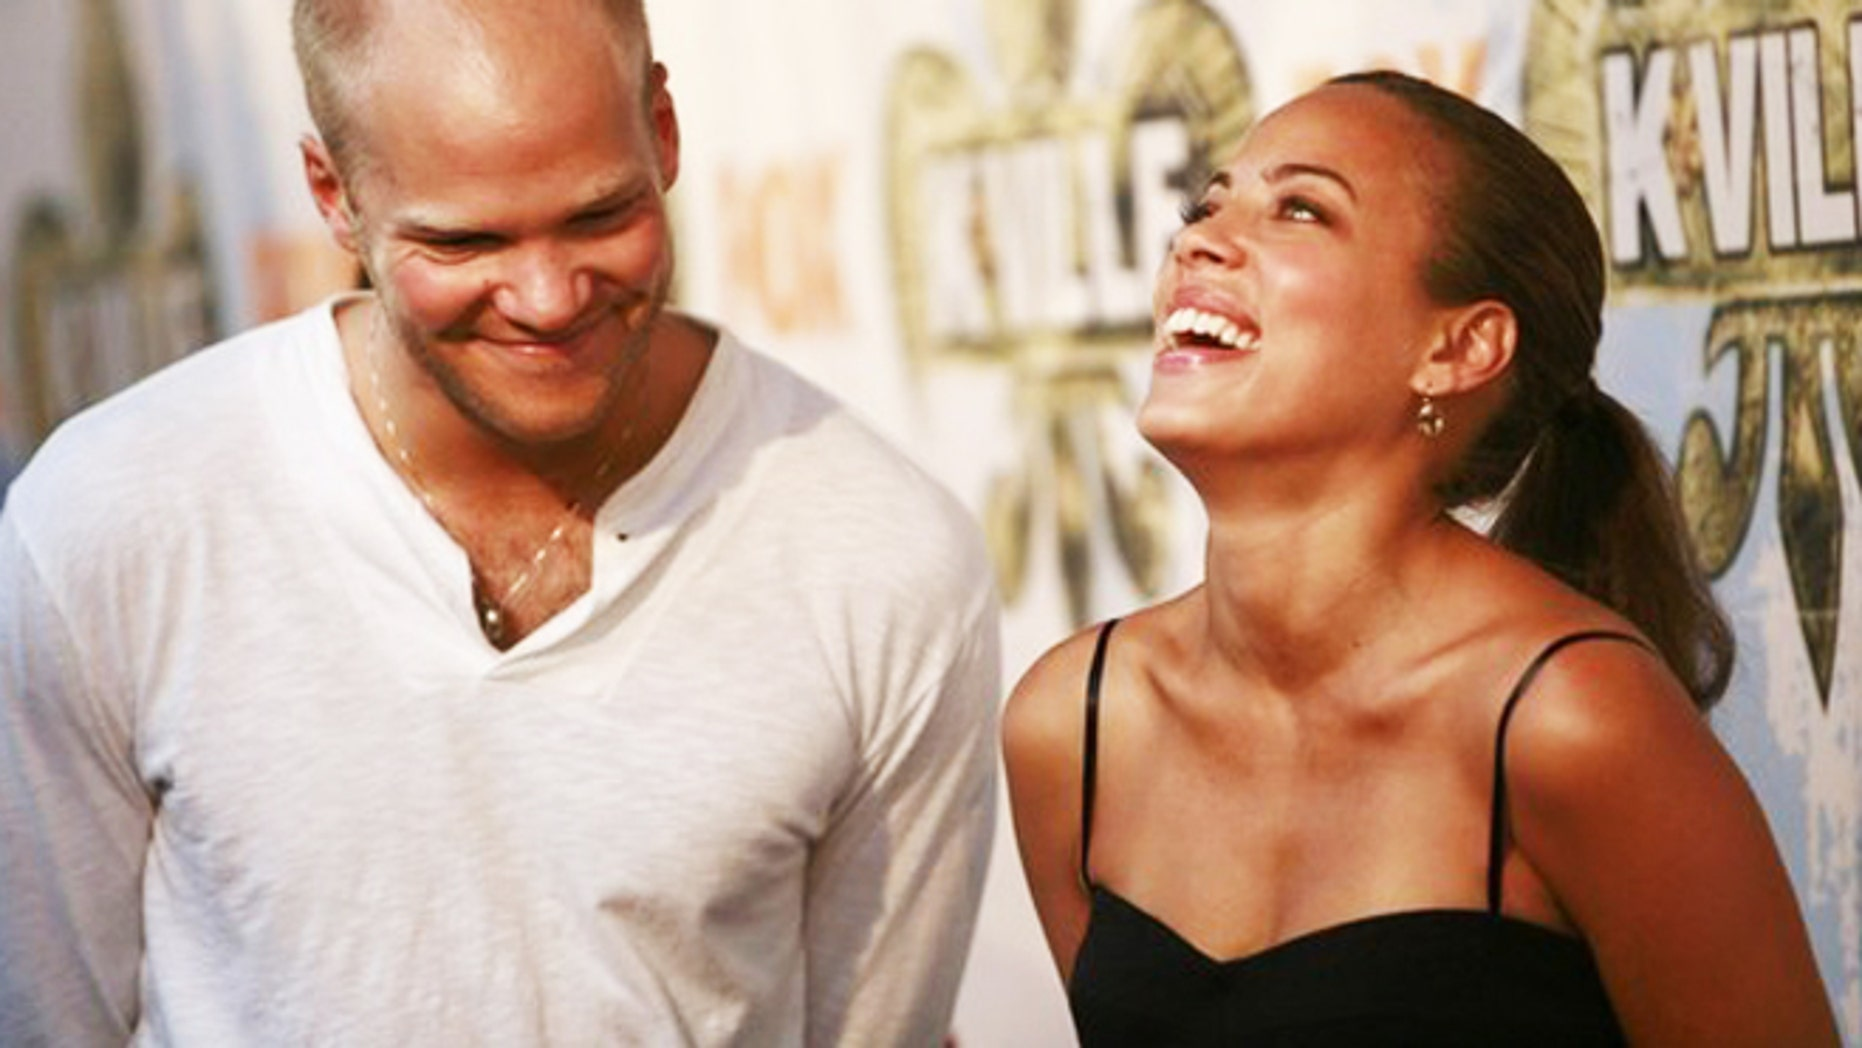 """Cast members Blake Shields (L) and Tawny Cypress laugh before a party celebrating the television series """"K-Ville"""" in New Orleans, Lousiana August 19, 2007."""